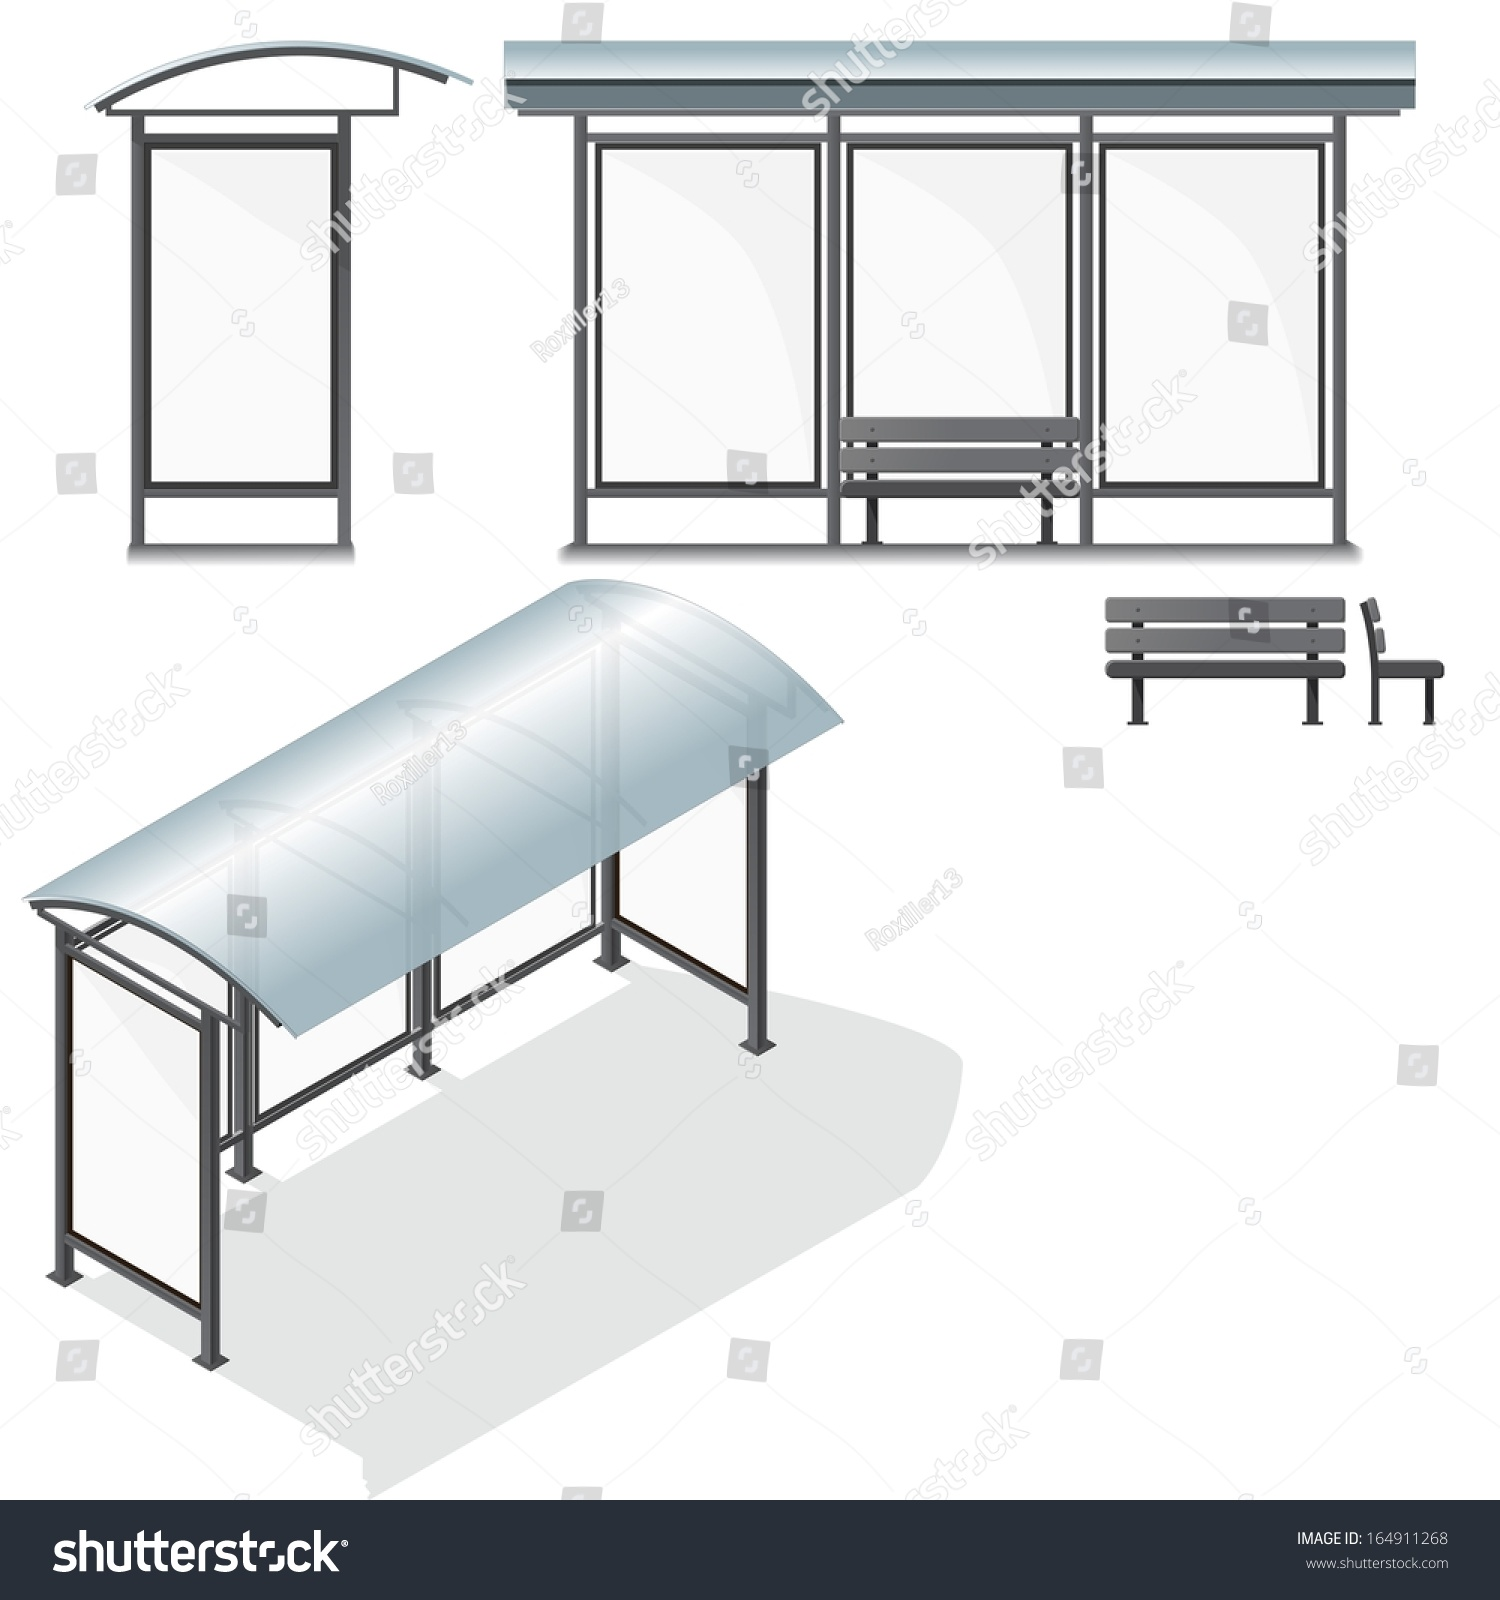 Bus Stop. Empty Design Template For Branding. Vector Illustration ...